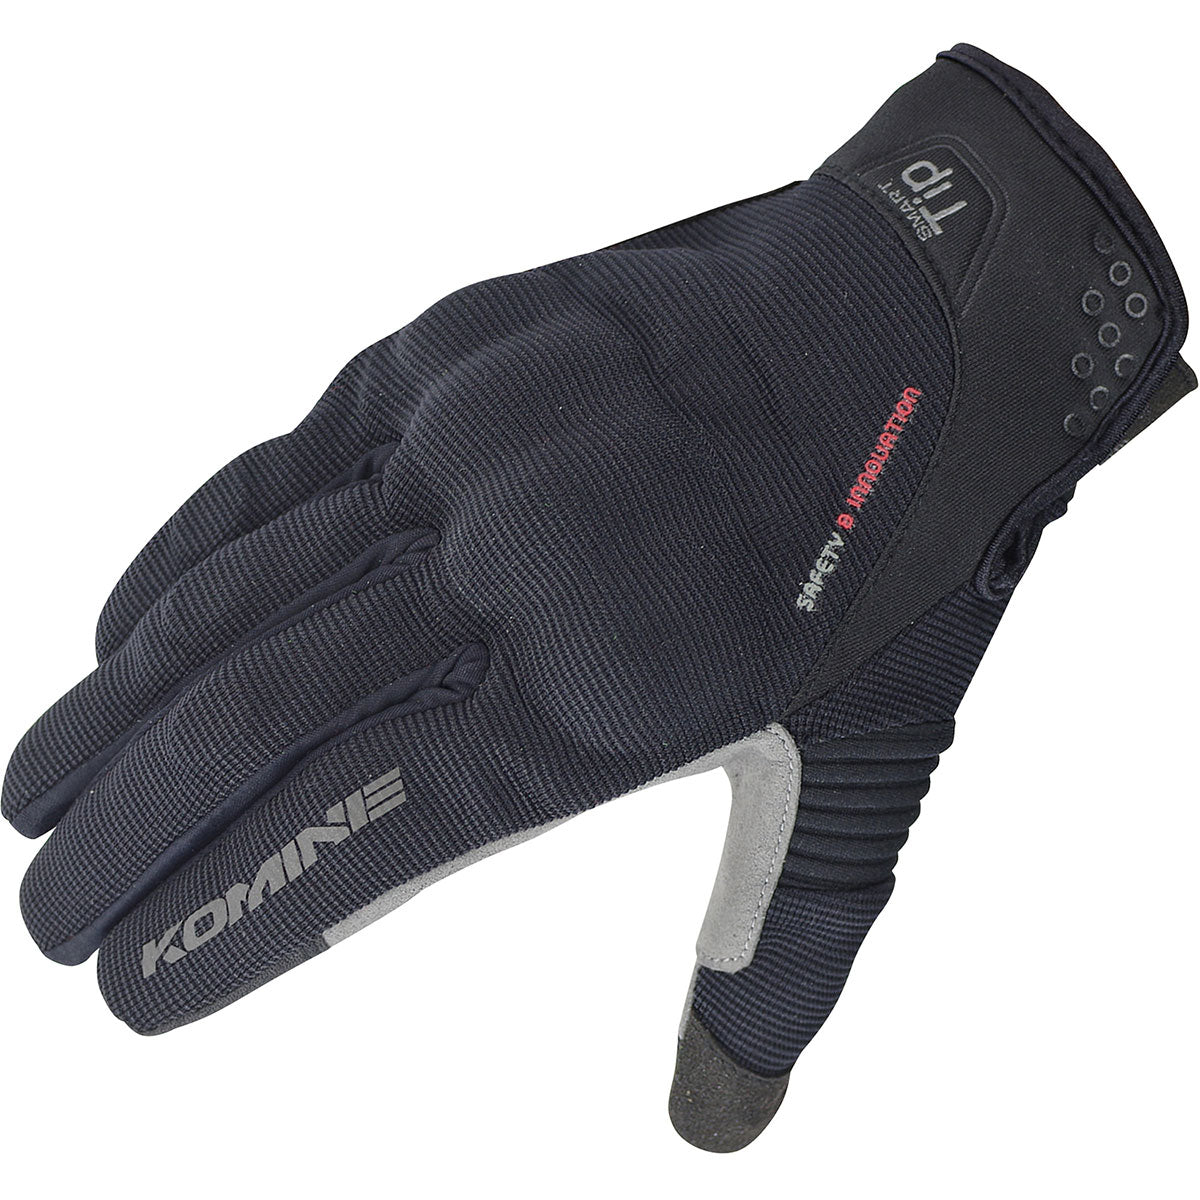 Komine GK-183 Protect M Gloves Brave Black/Black